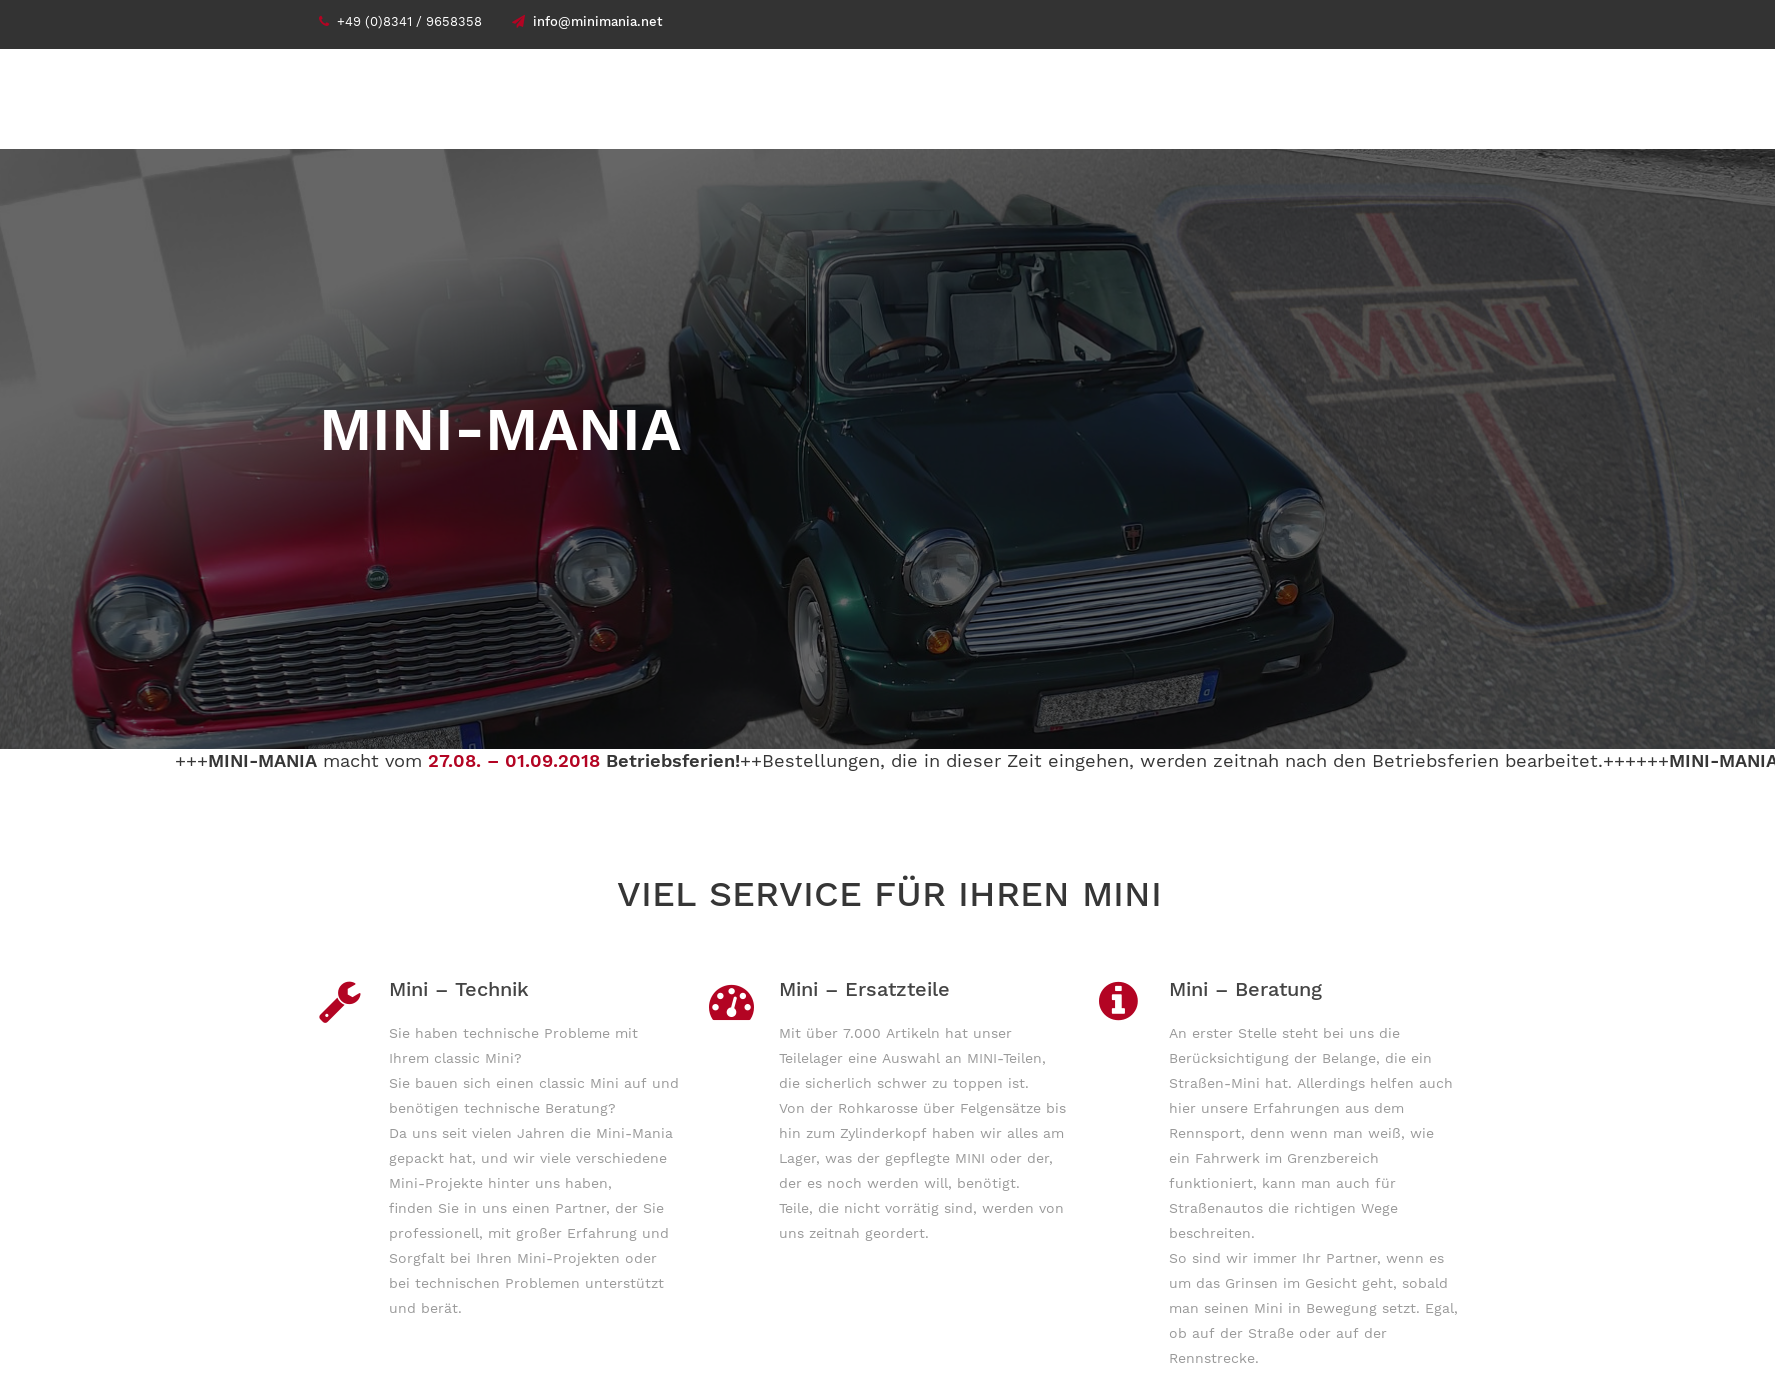 screenshot der Website minimania.net